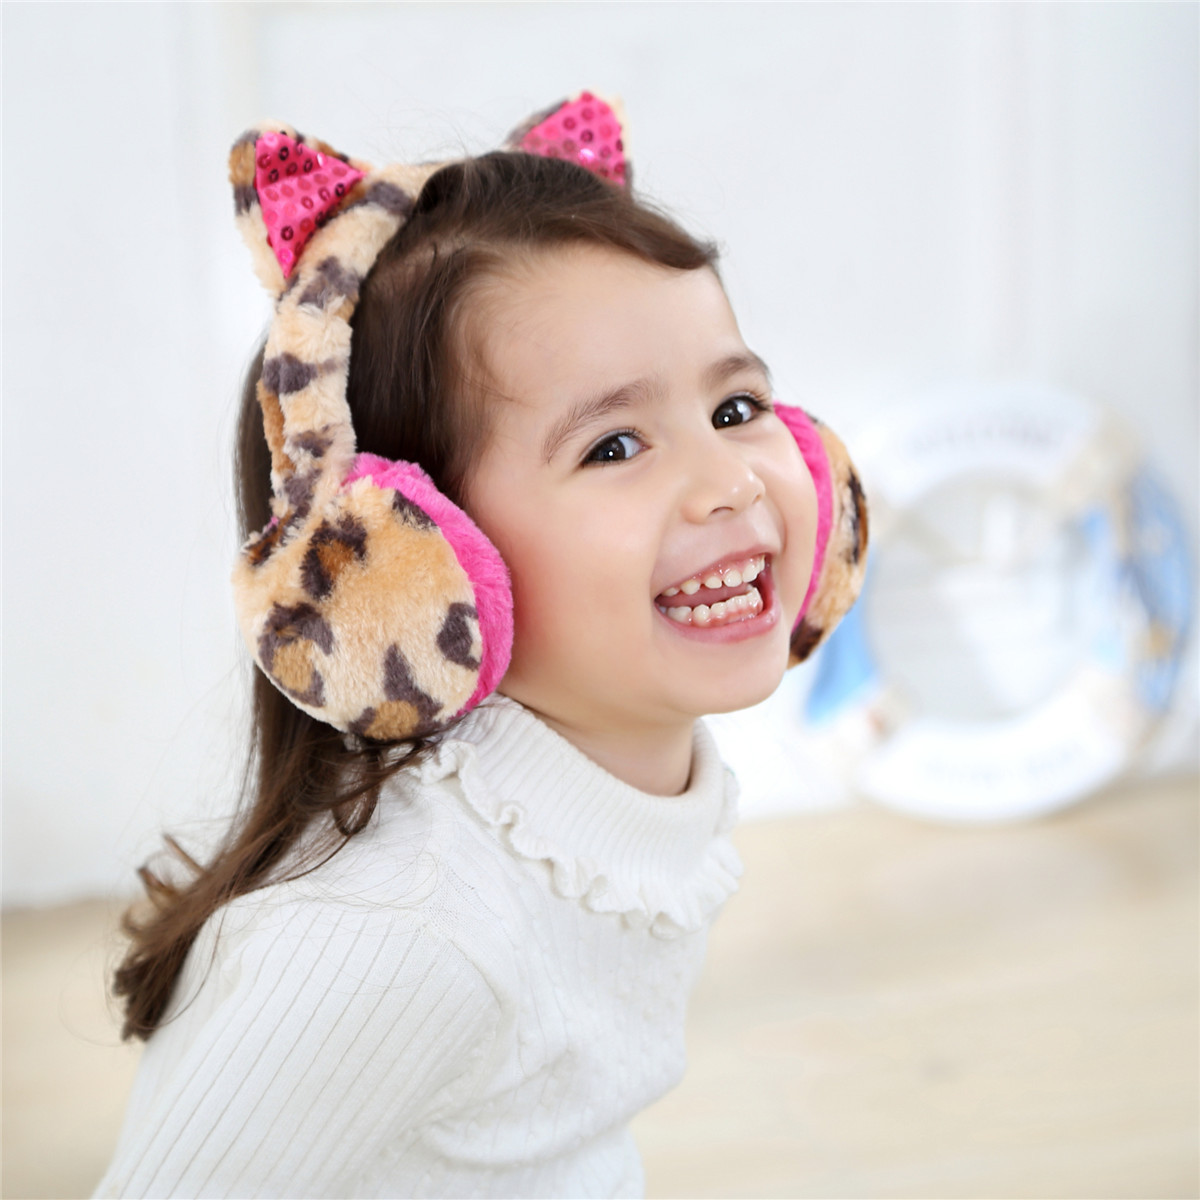 Scalable Leopard Earmuffs Kids Boys Girls Cute Sequins Animal Ears Winter Plush Thicken Warm Windproof Material Soft Accessories